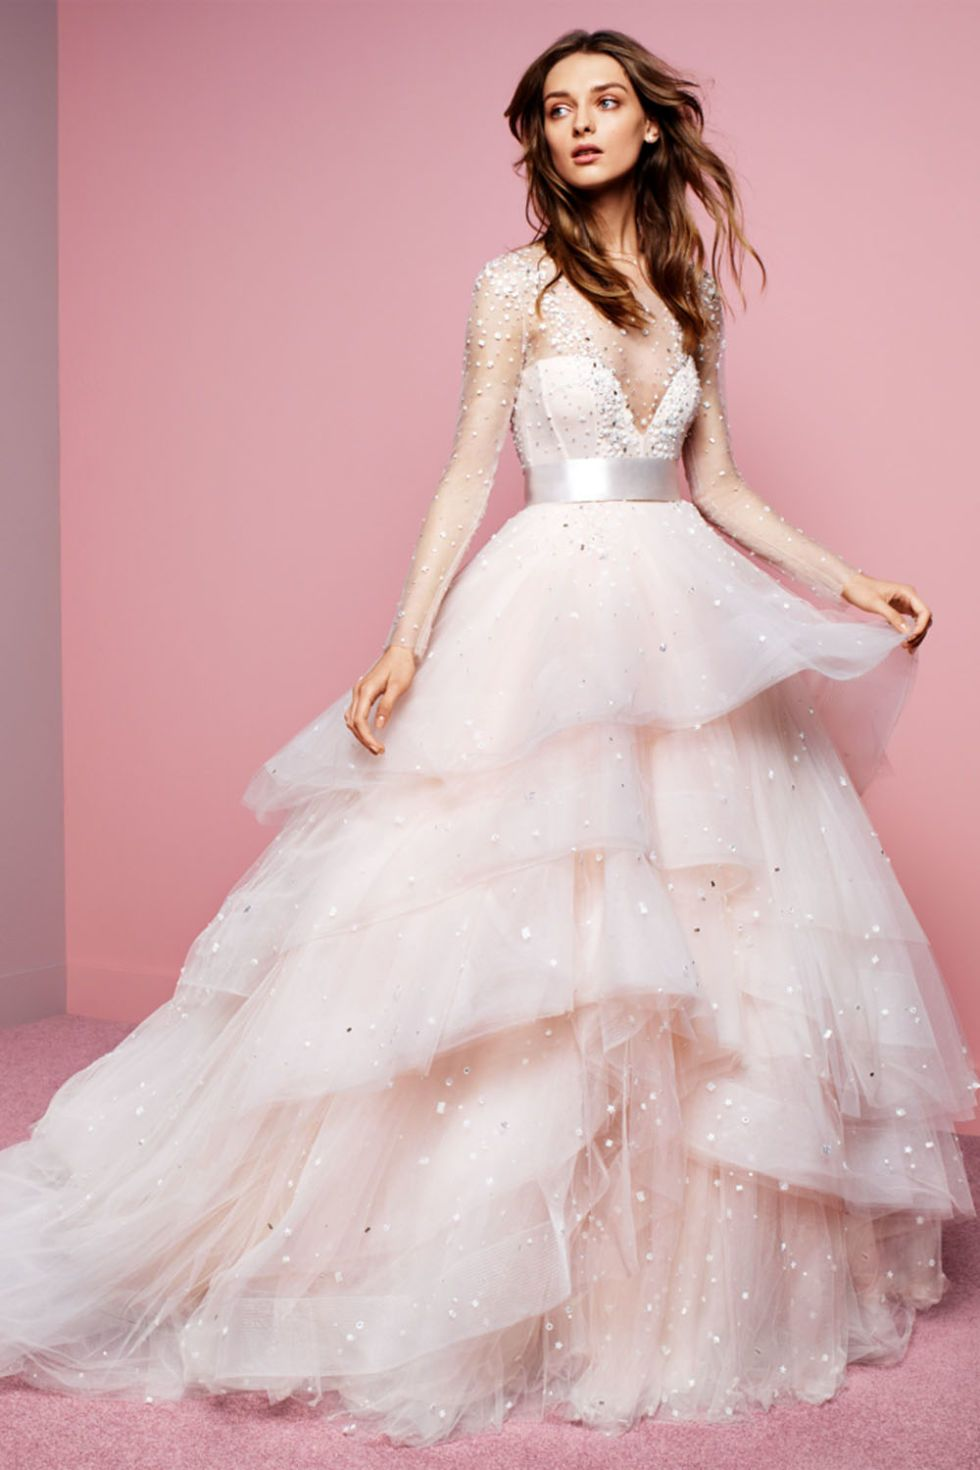 Monique Lhuillier Looks Back On 20 Years of Bridal Fashion | Novios